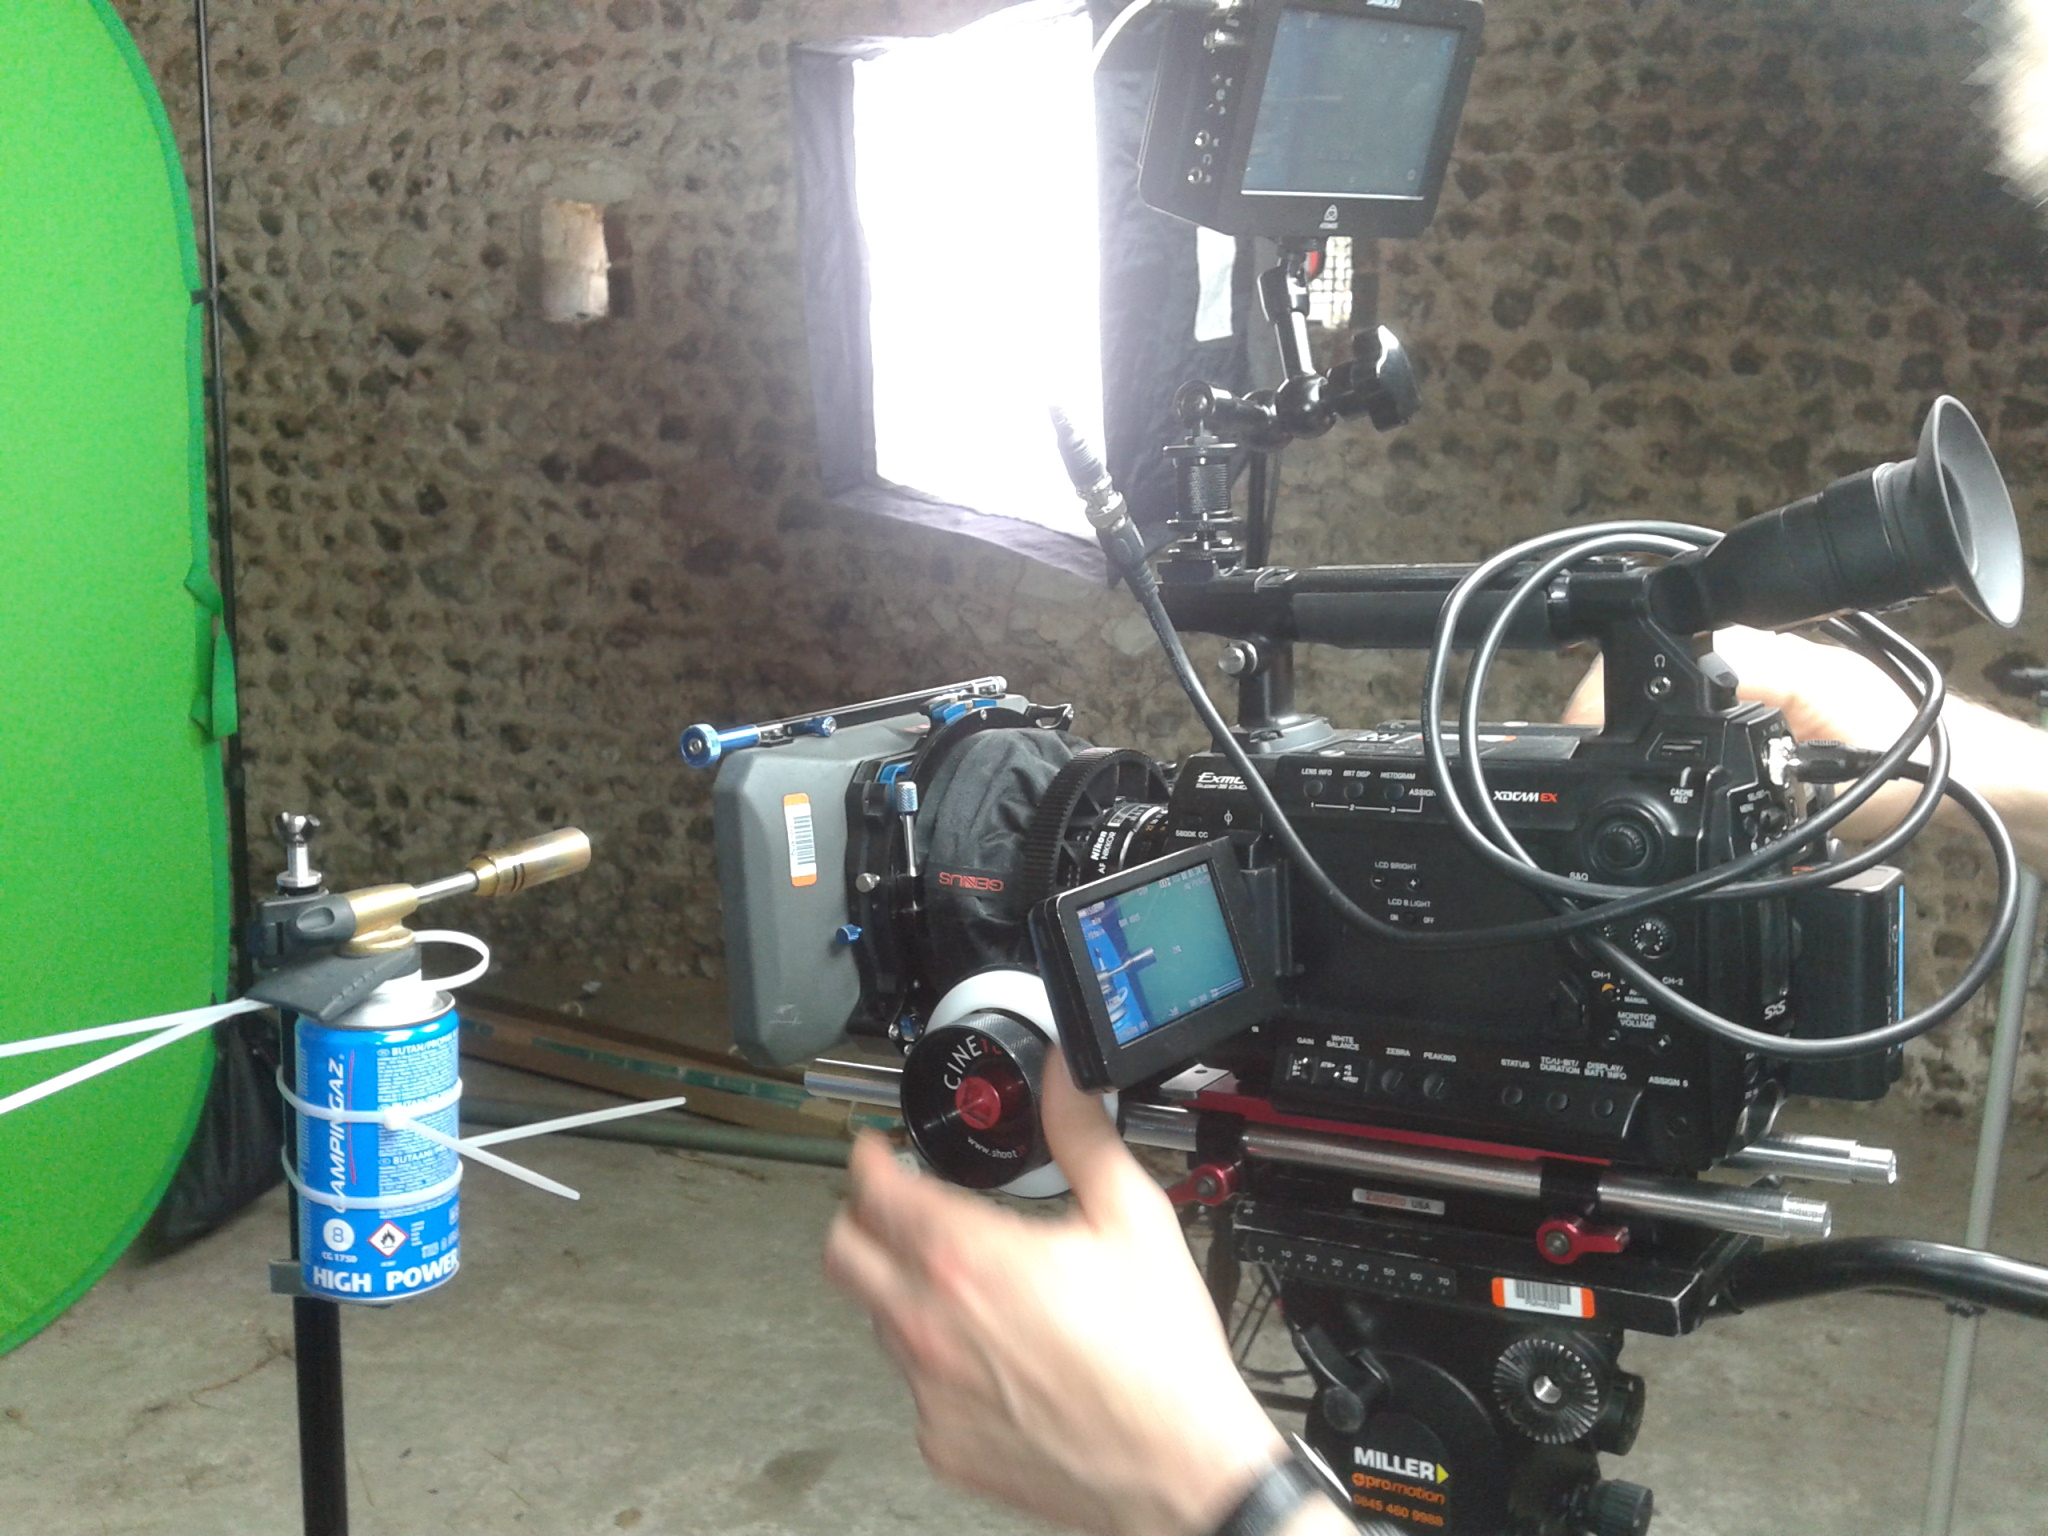 Testing the Sony F3 and Atomos recorder